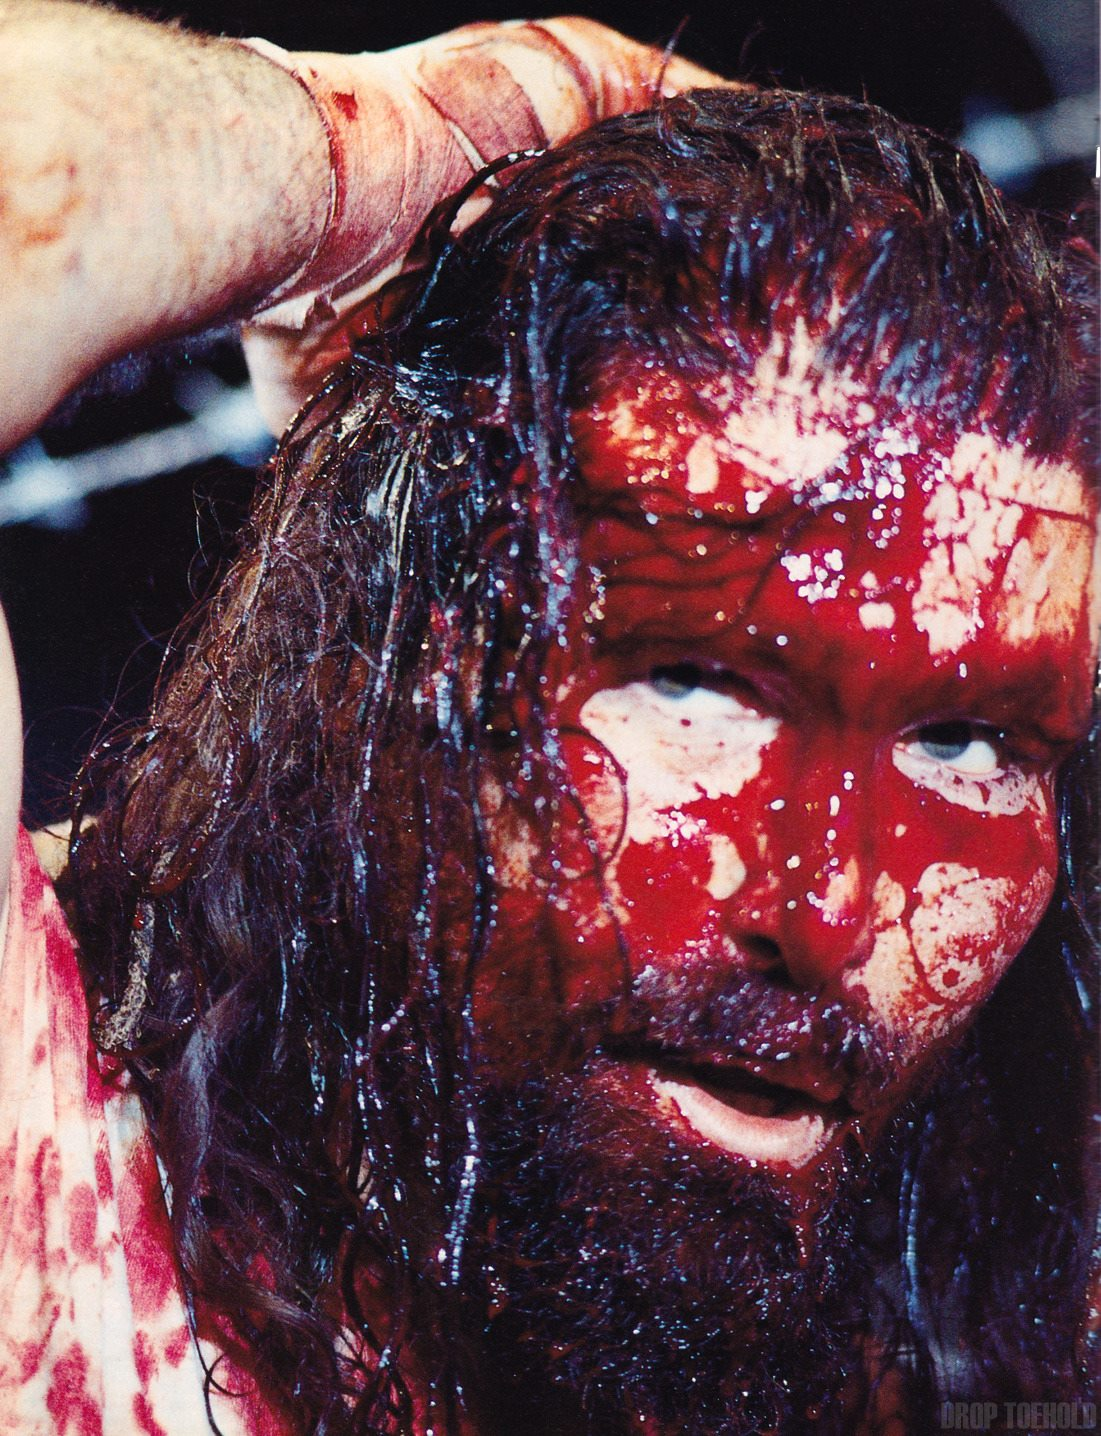 A bloodied Mick Foley (competing as Cactus Jack) in the aftermath of Japan's IWA Kawasaki Dream King of the Deathmatch final against Terry Funk on August 20th, 1995.